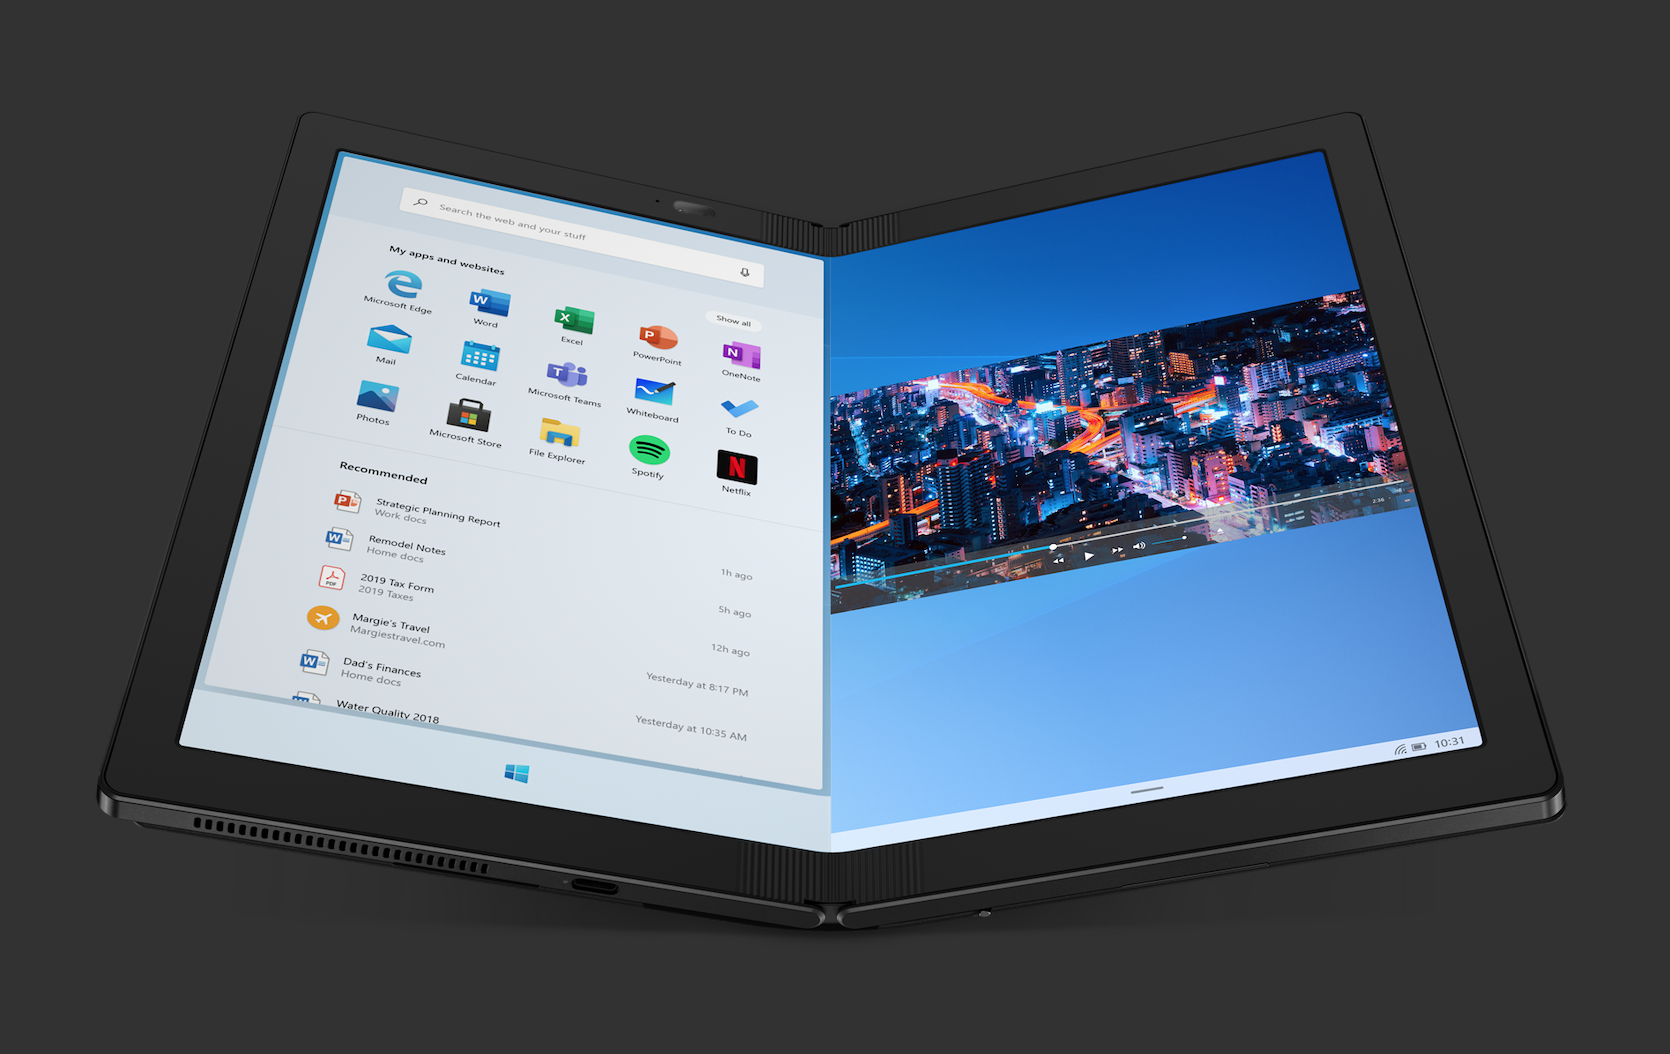 The Lenovo Fold X1 Is a Brilliant Foldable PC. But Will Anybody Want One?